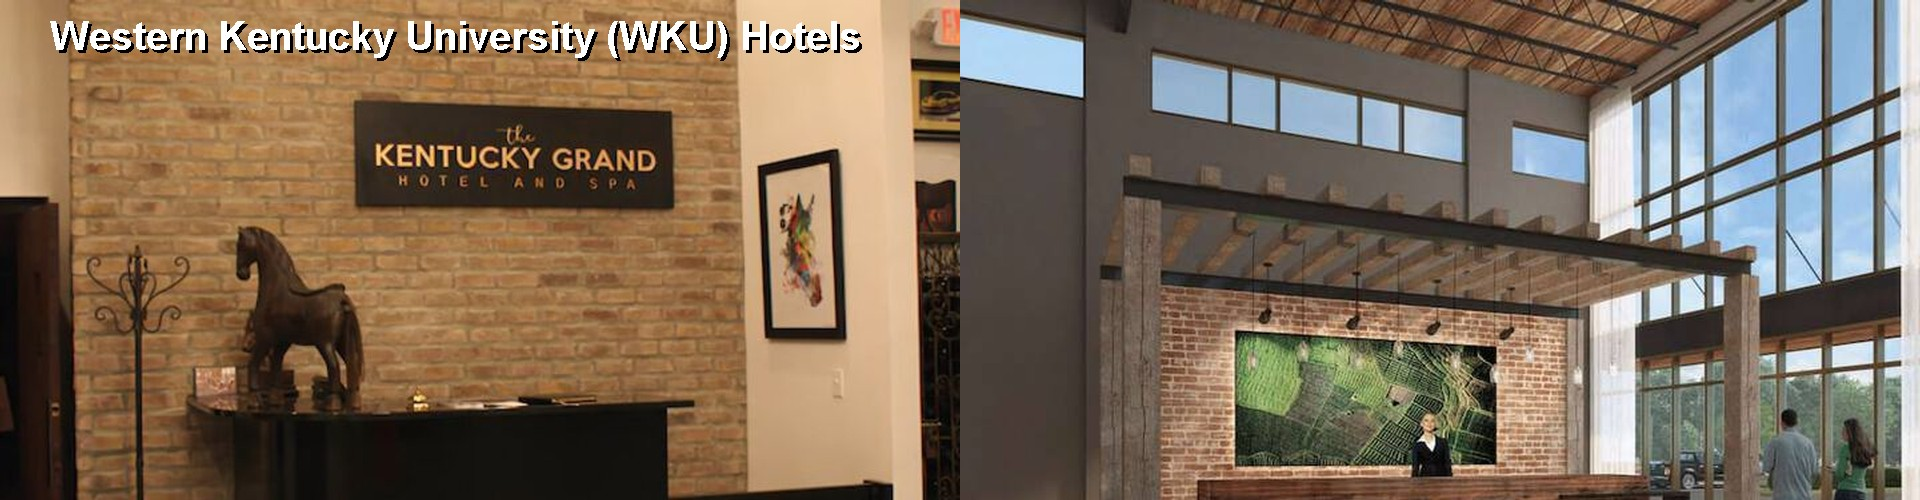 5 Best Hotels near Western Kentucky University (WKU)